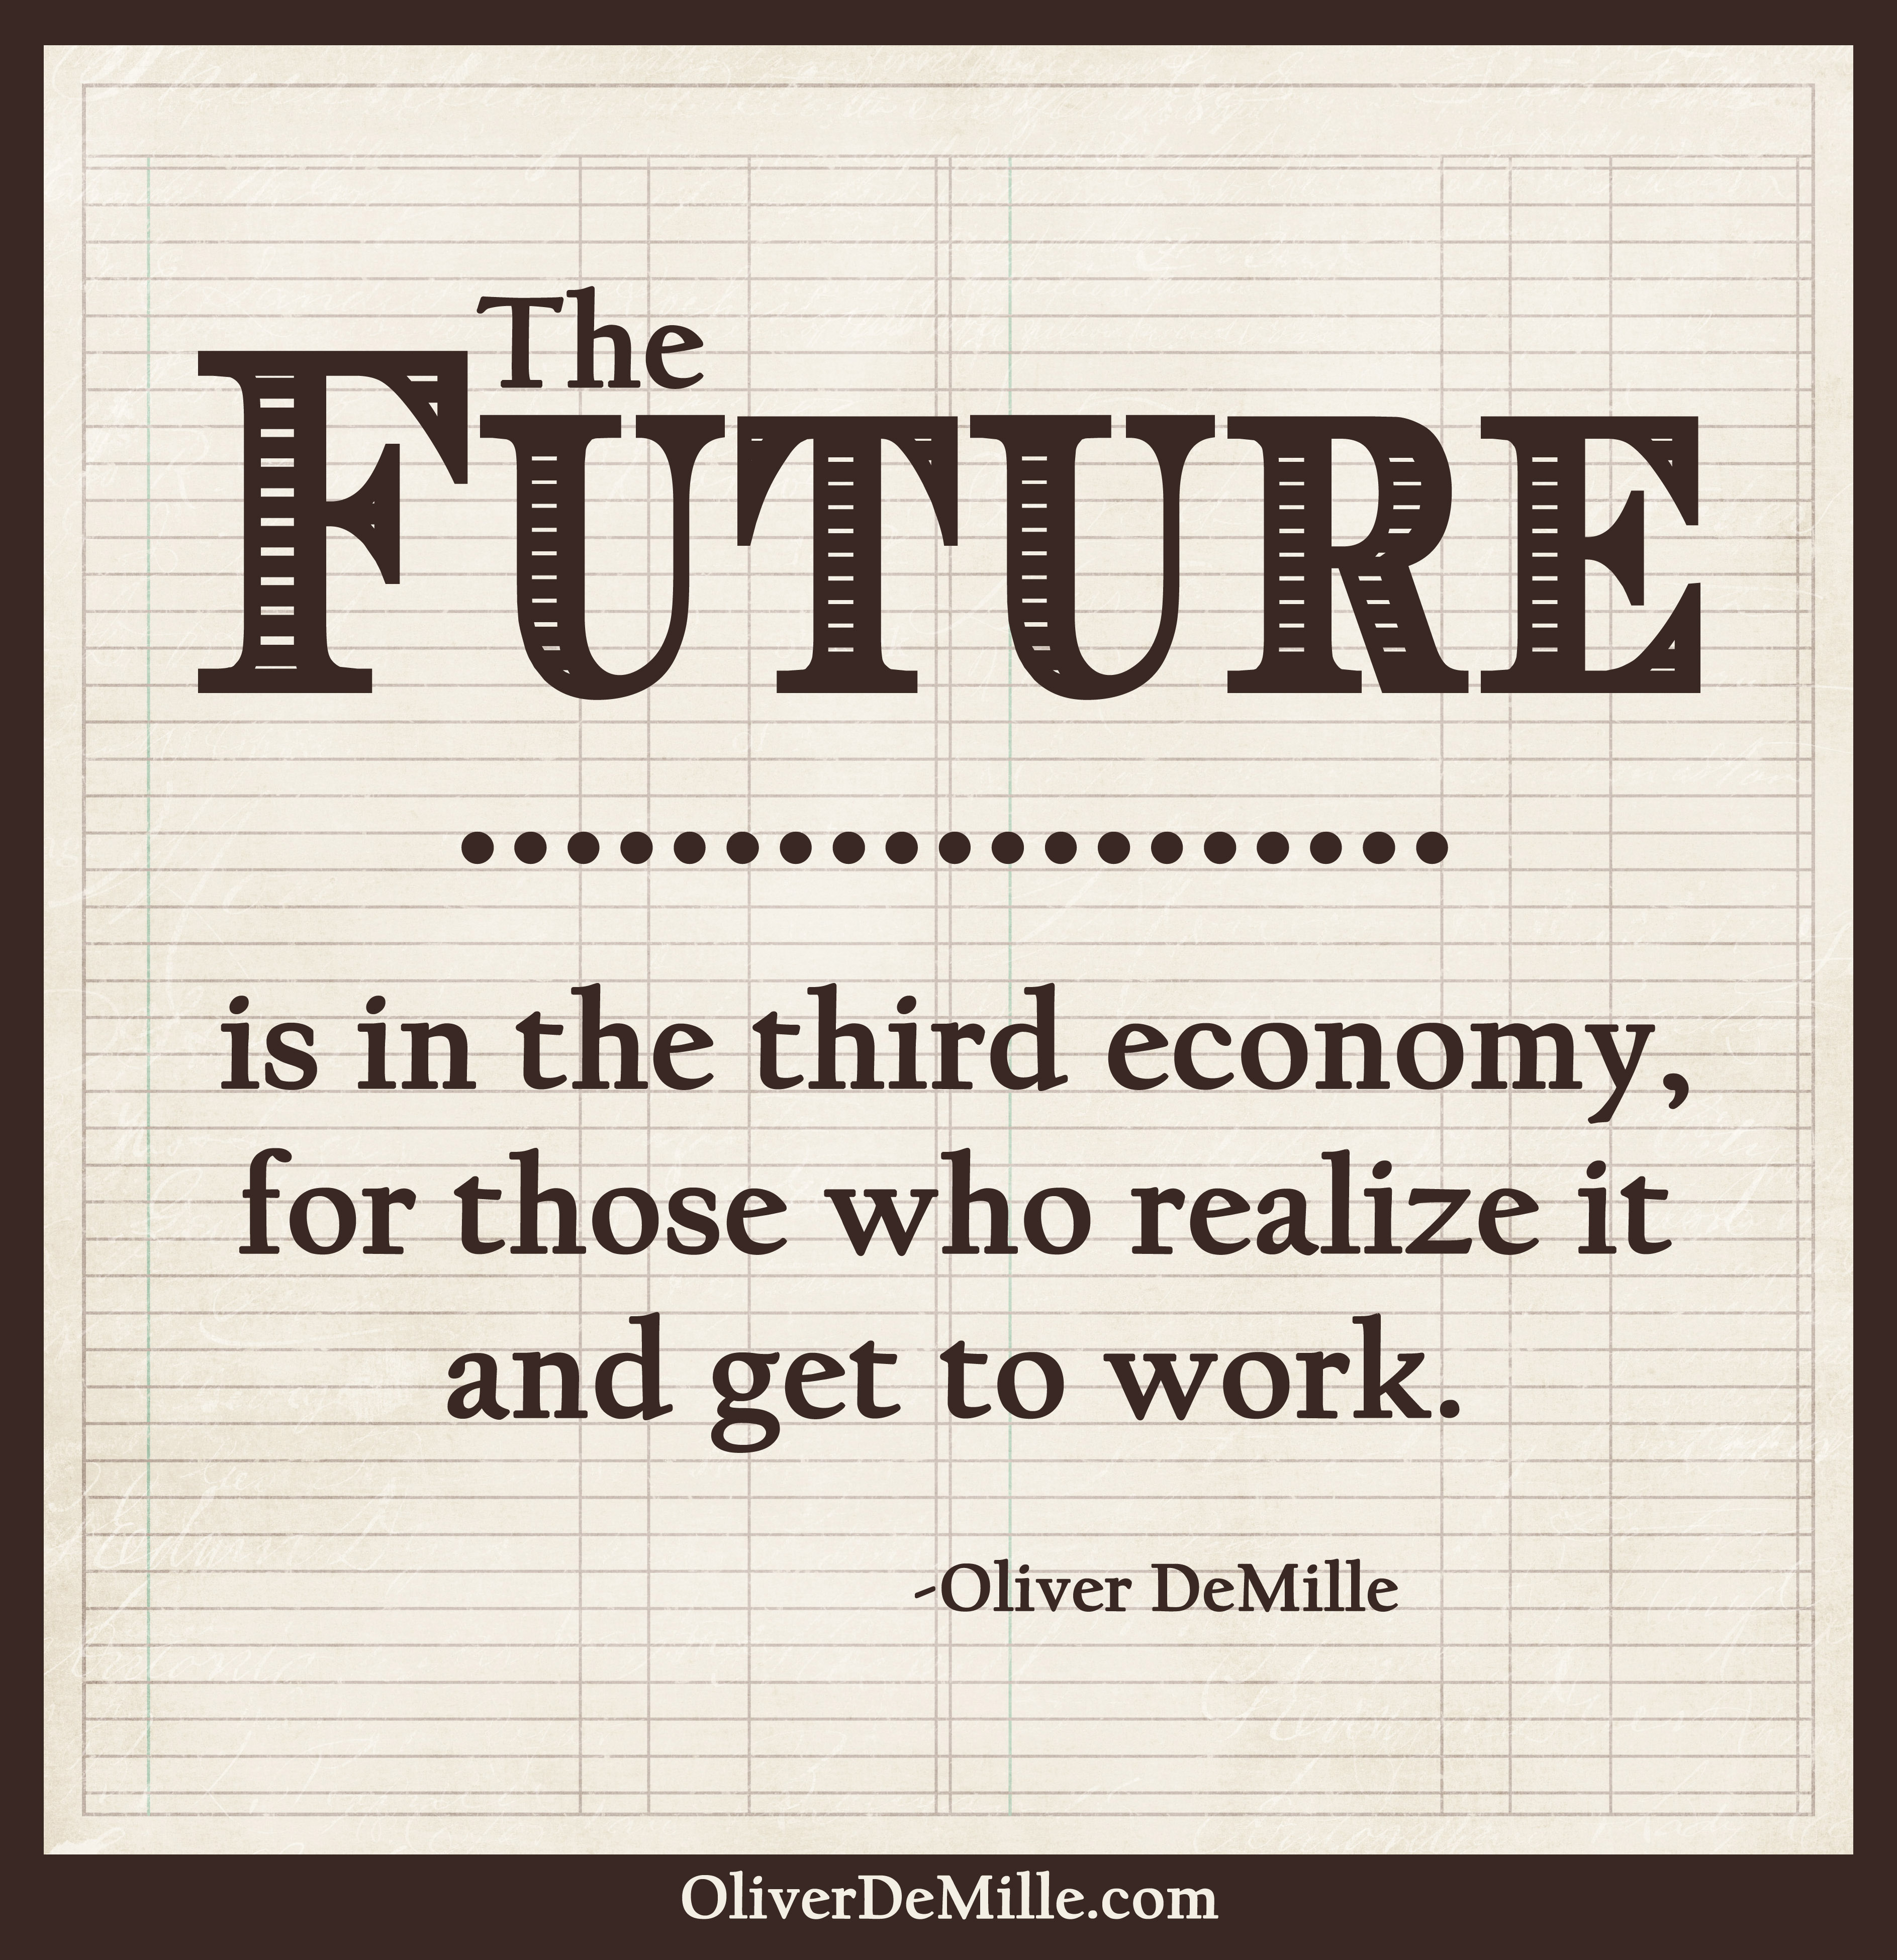 TheThreeEconomies Thefuture The Three Economies by Oliver DeMille